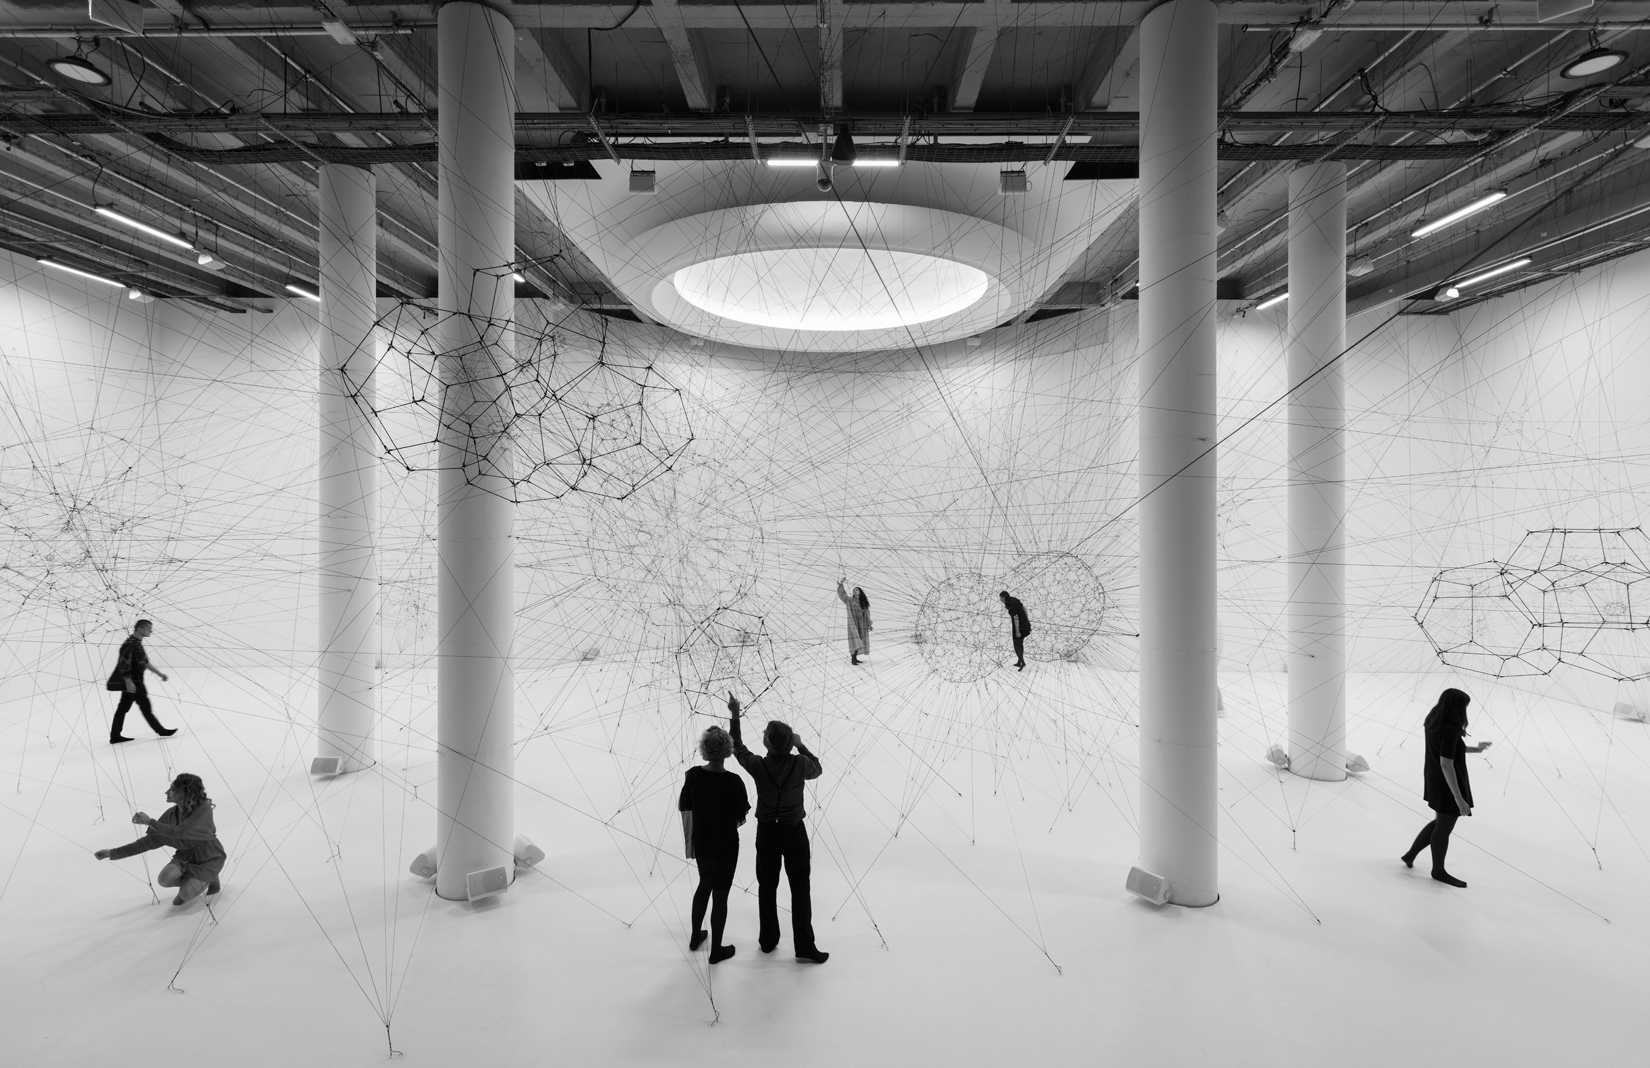 Tomás Saraceno, 'ON AIR' solo exhibition at Palais de Tokyo, Paris, 2018, curated by Rebecca Lamarche-Vadel. Courtesy the artist; Andersenís, Copenhagen; Esther Schipper, Berlin; Pinksummer Contemporary Art, Genoa; Ruth Benzacar, Buenos Aires; Tanya Bonakdar Gallery, New York. © Photography Andrea Rossetti, 2018.